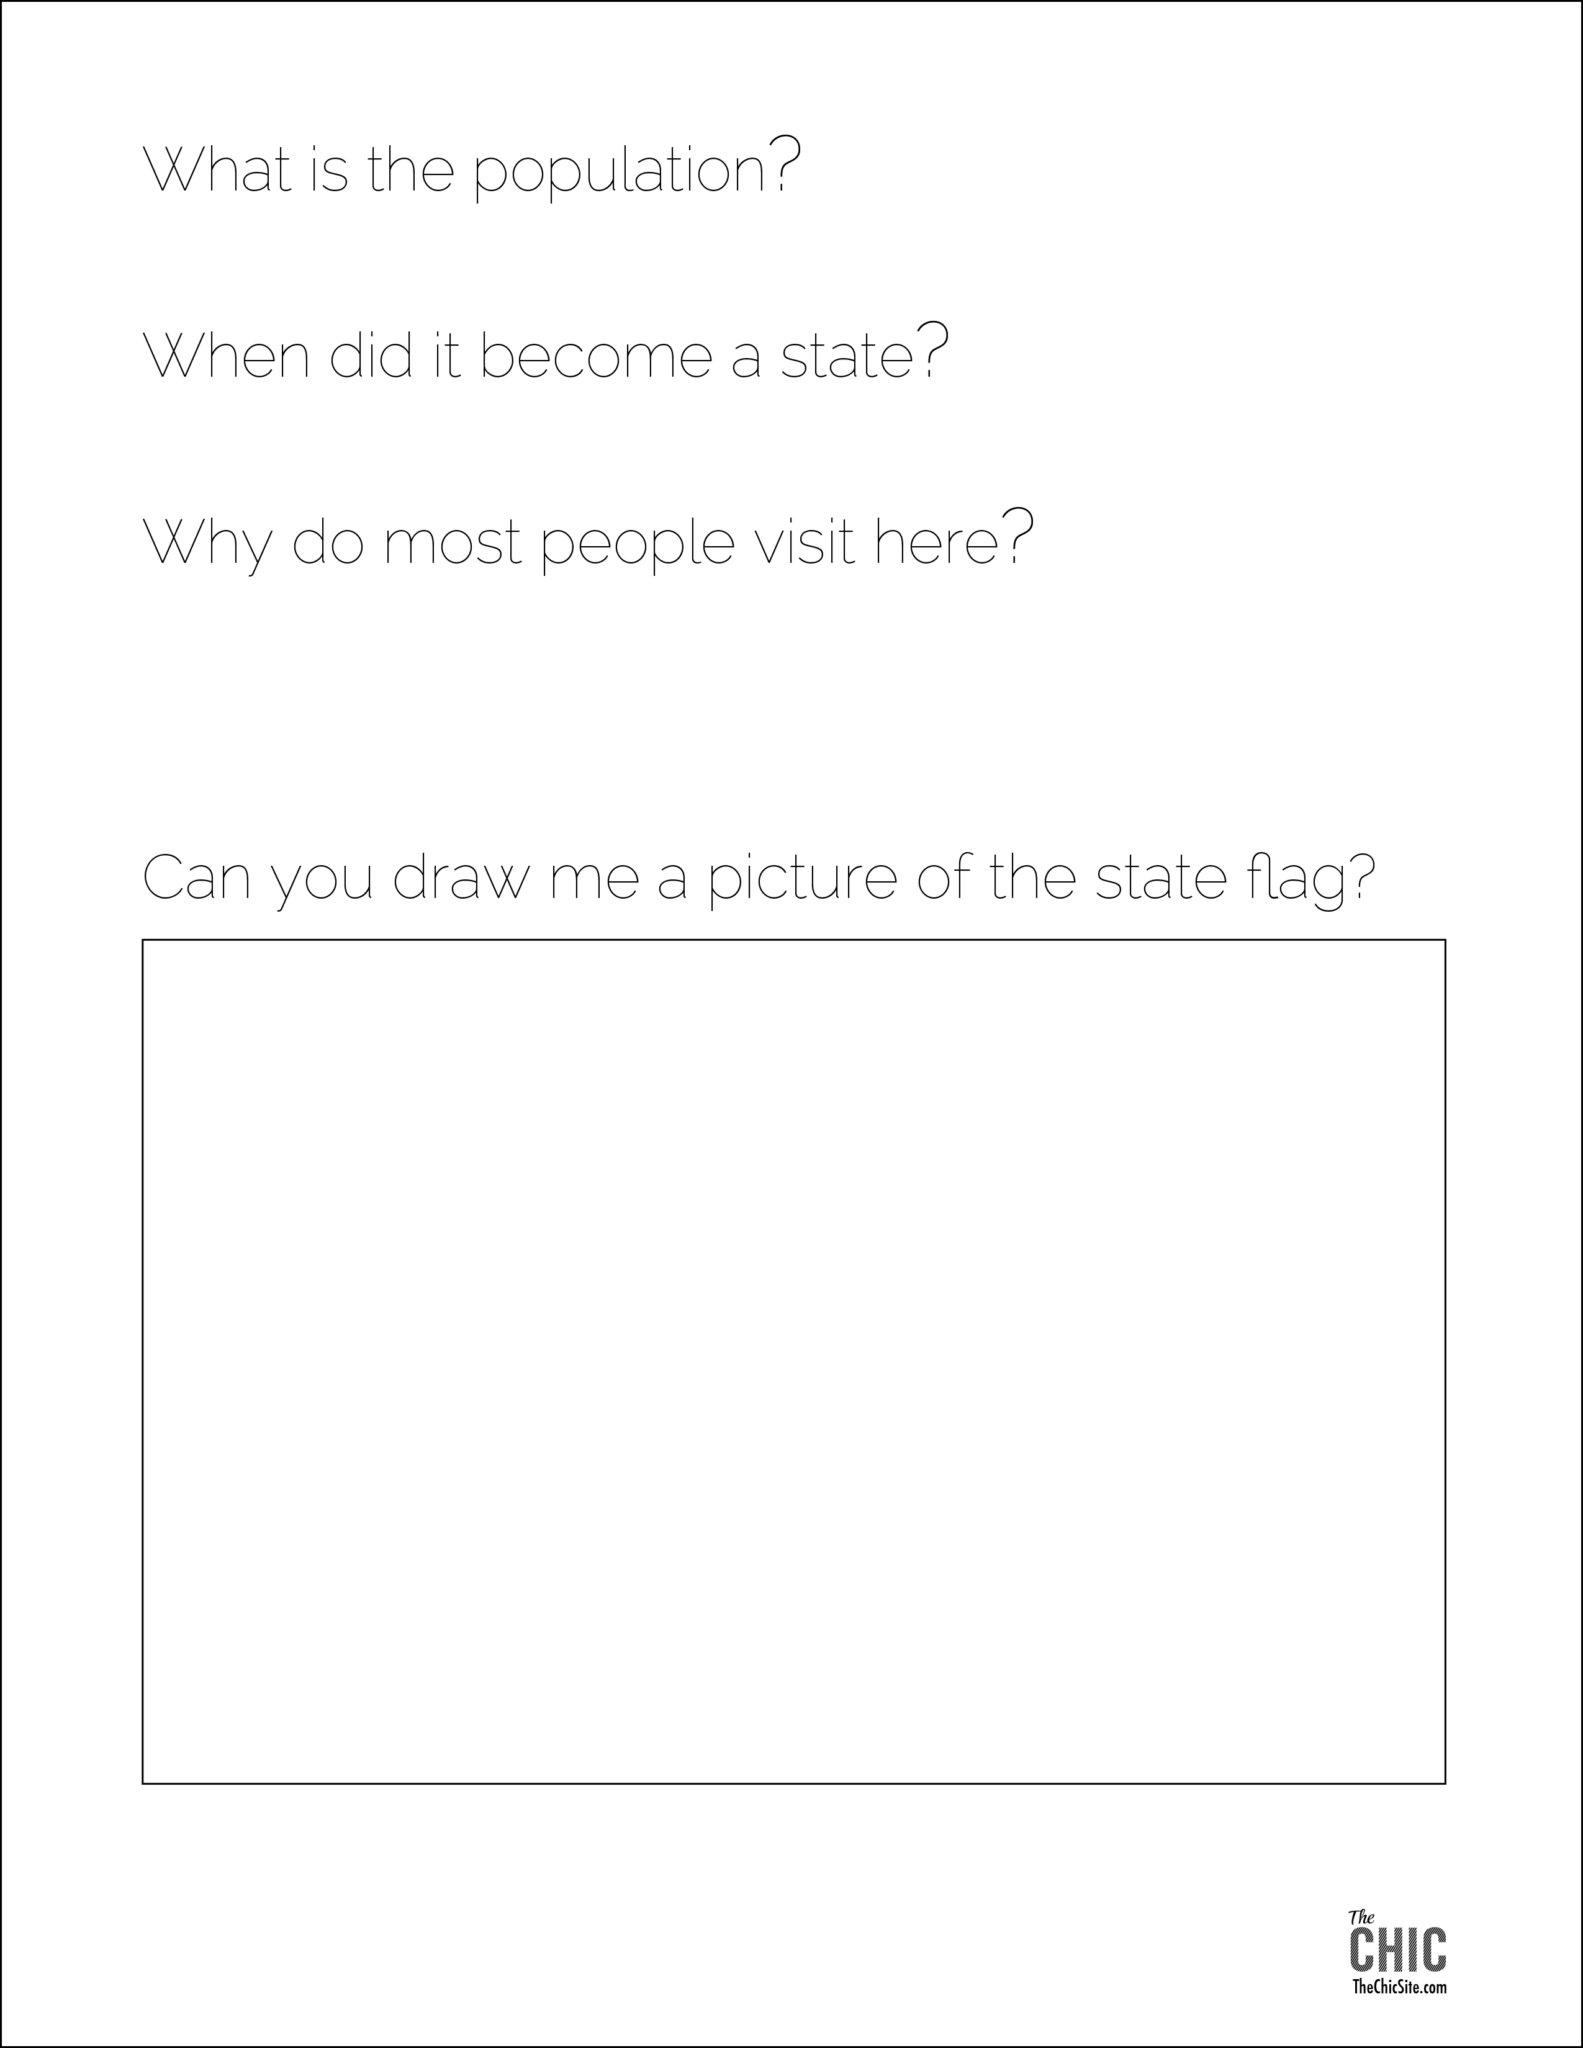 Thechicsite Tripsheet Printable 3